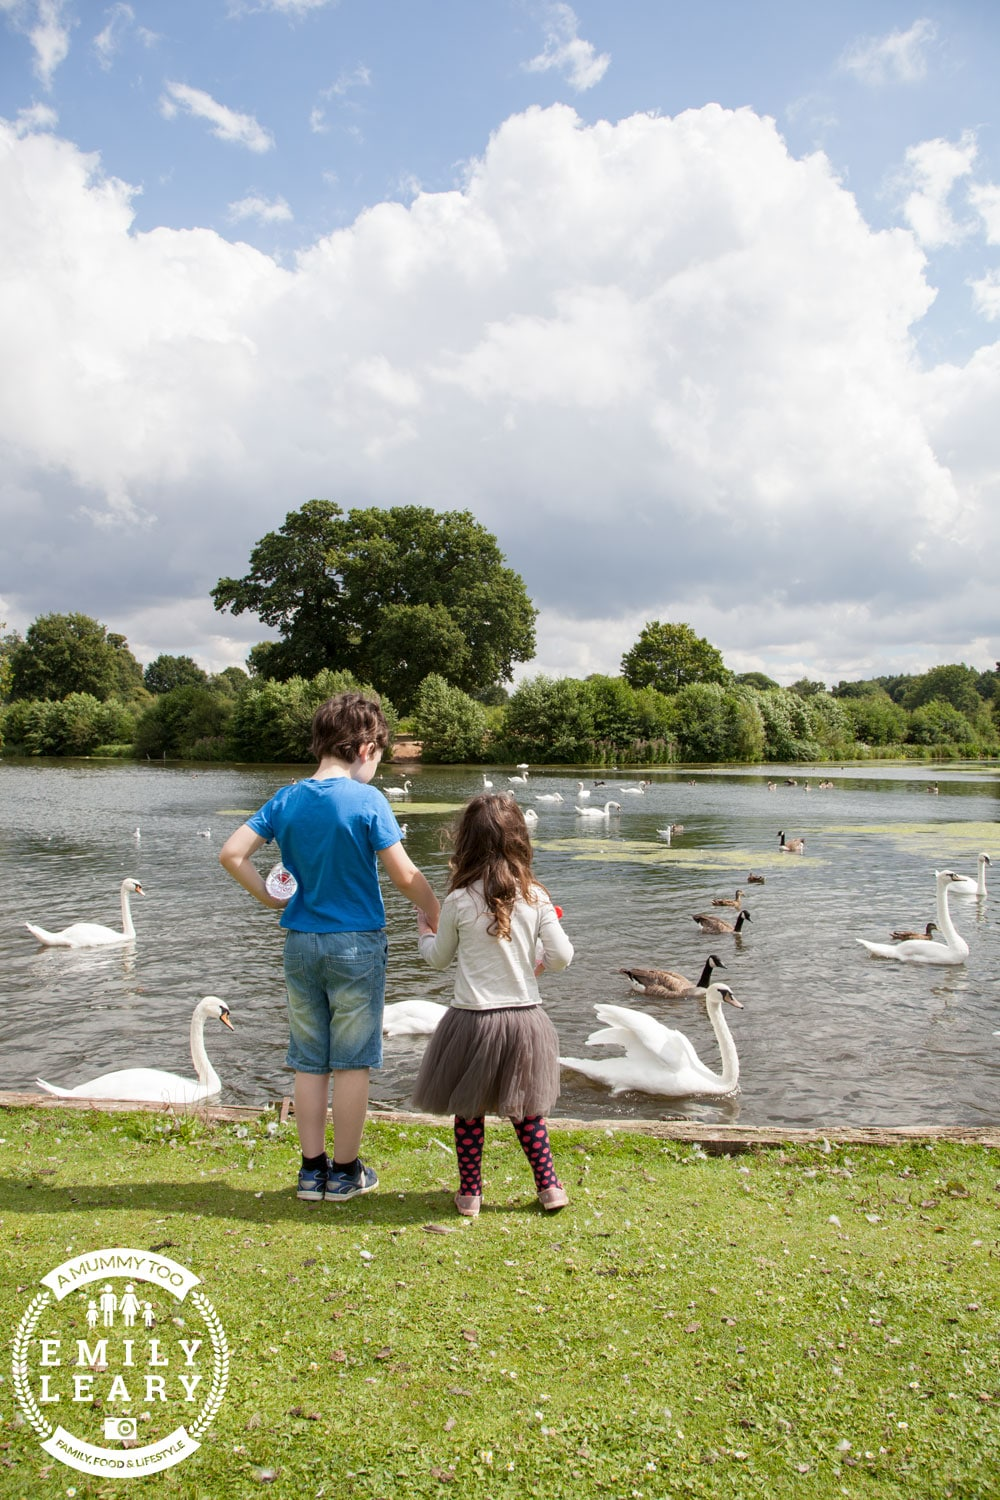 Kids with the swans at Clumber Park